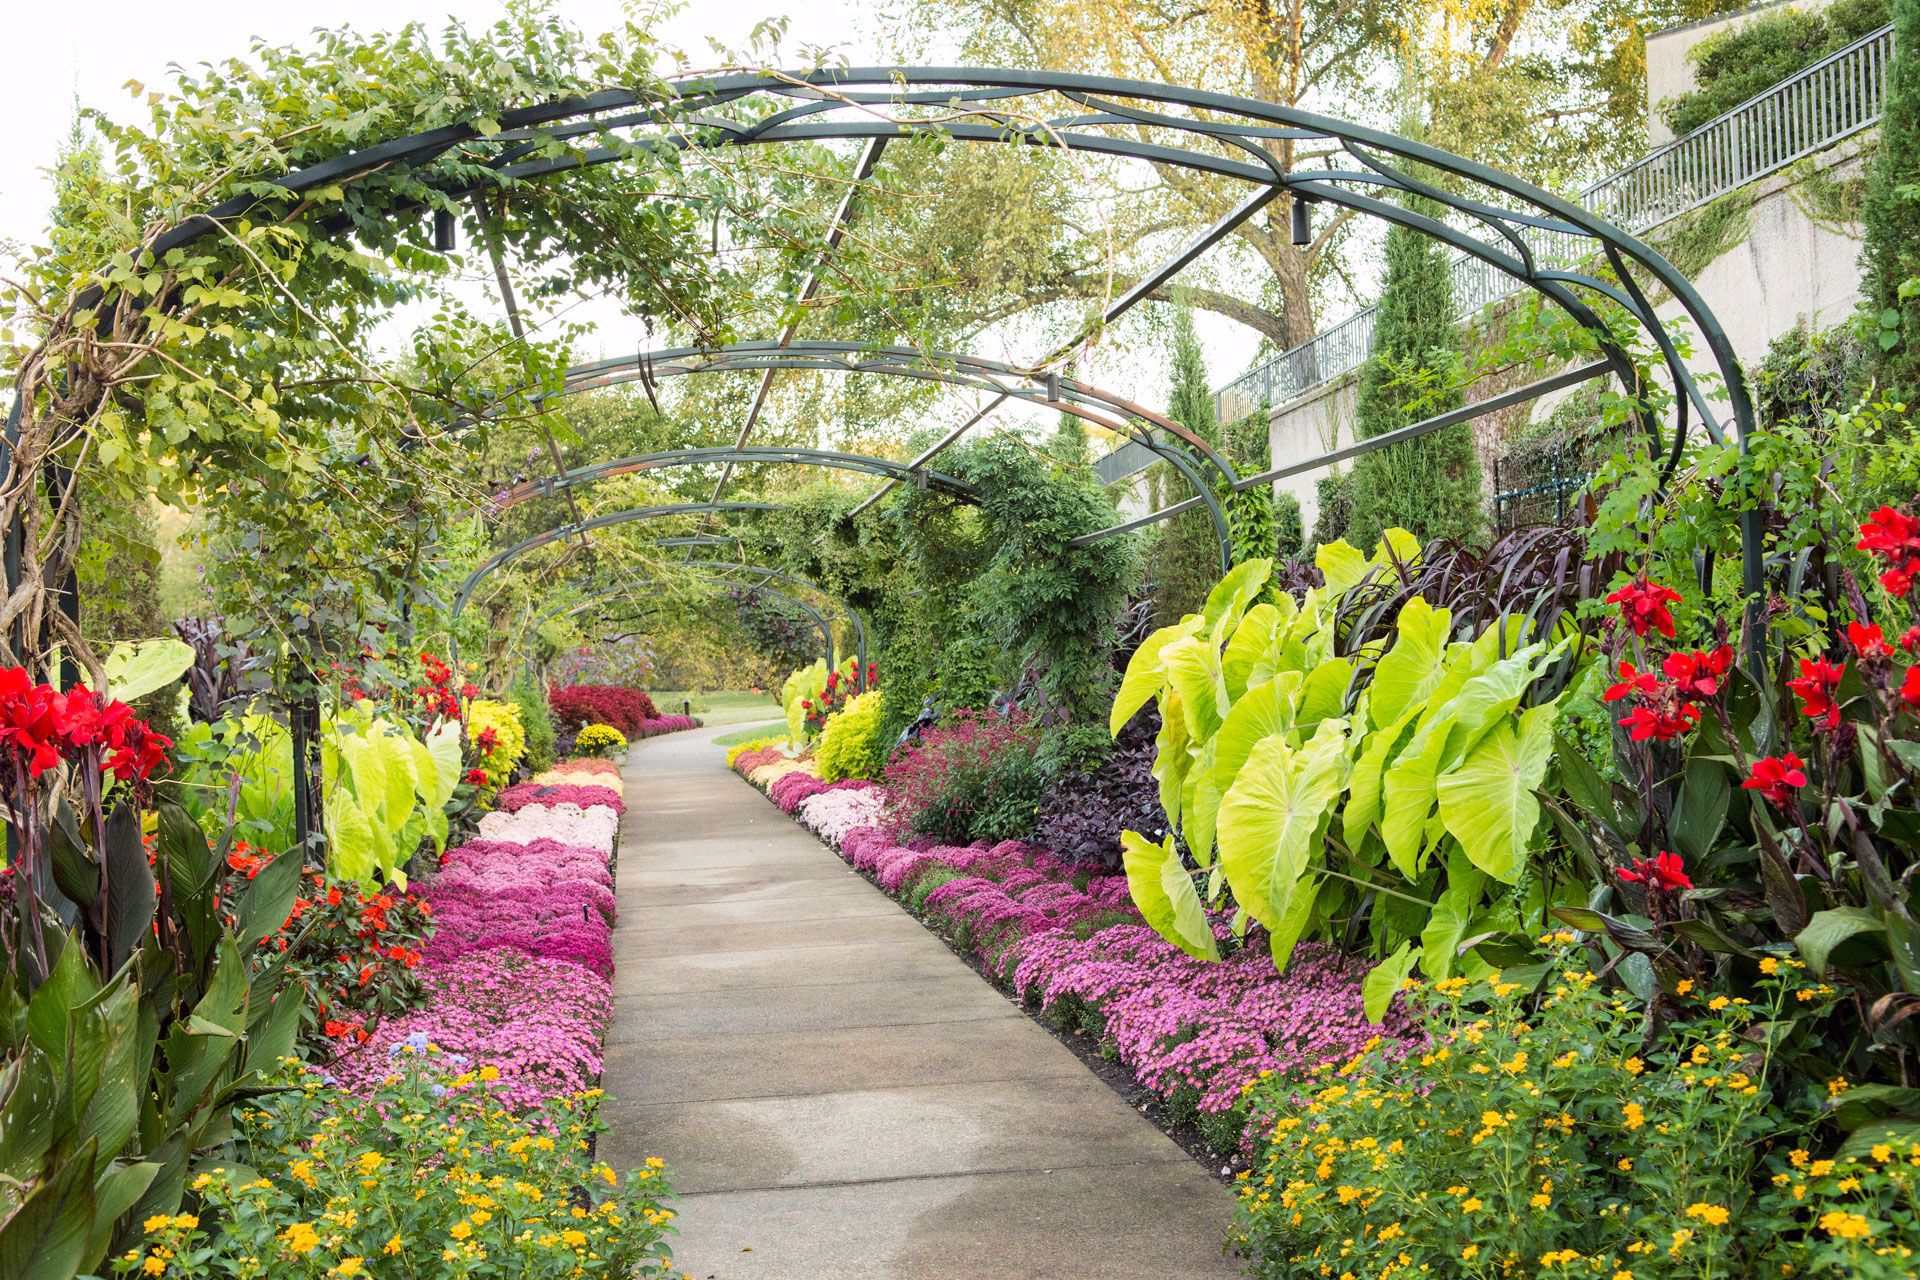 Beauty and excellence in art and horticulture